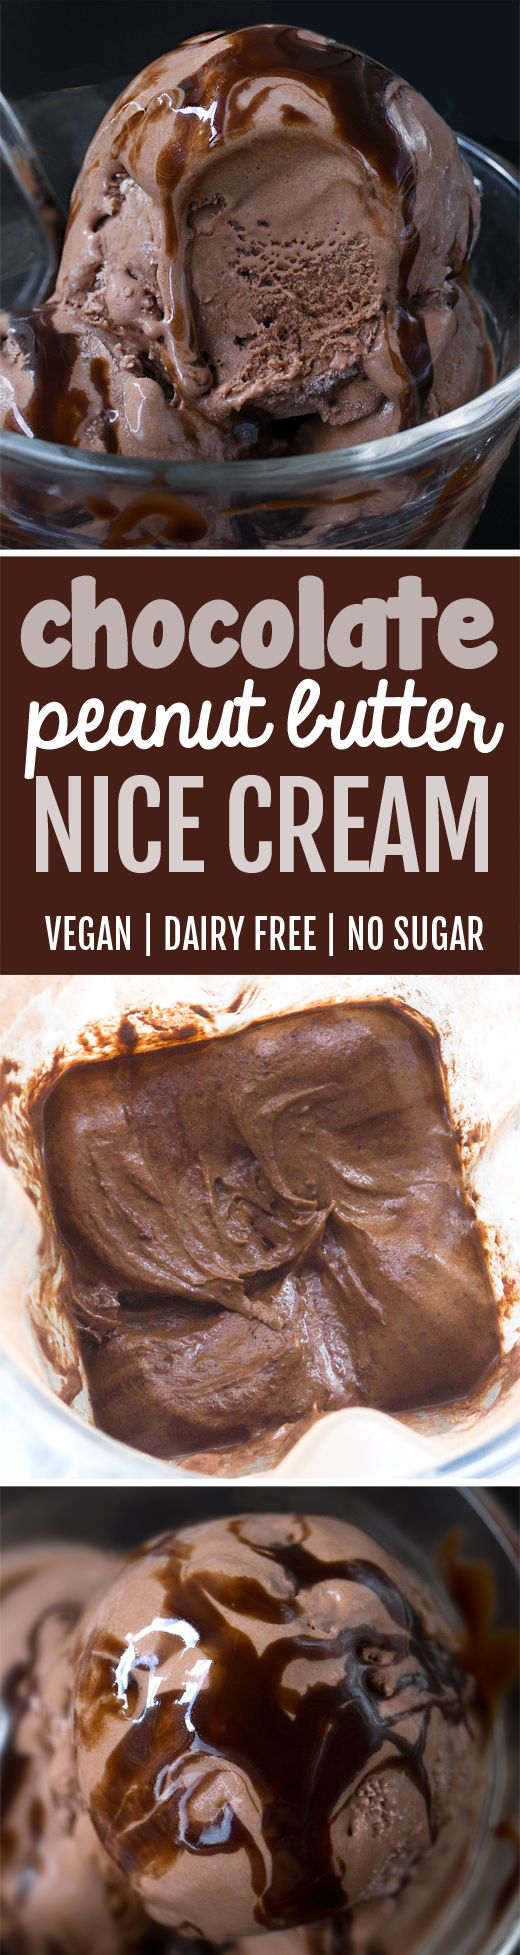 Chocolate Peanut Butter Nice Cream, so thick and creamy!